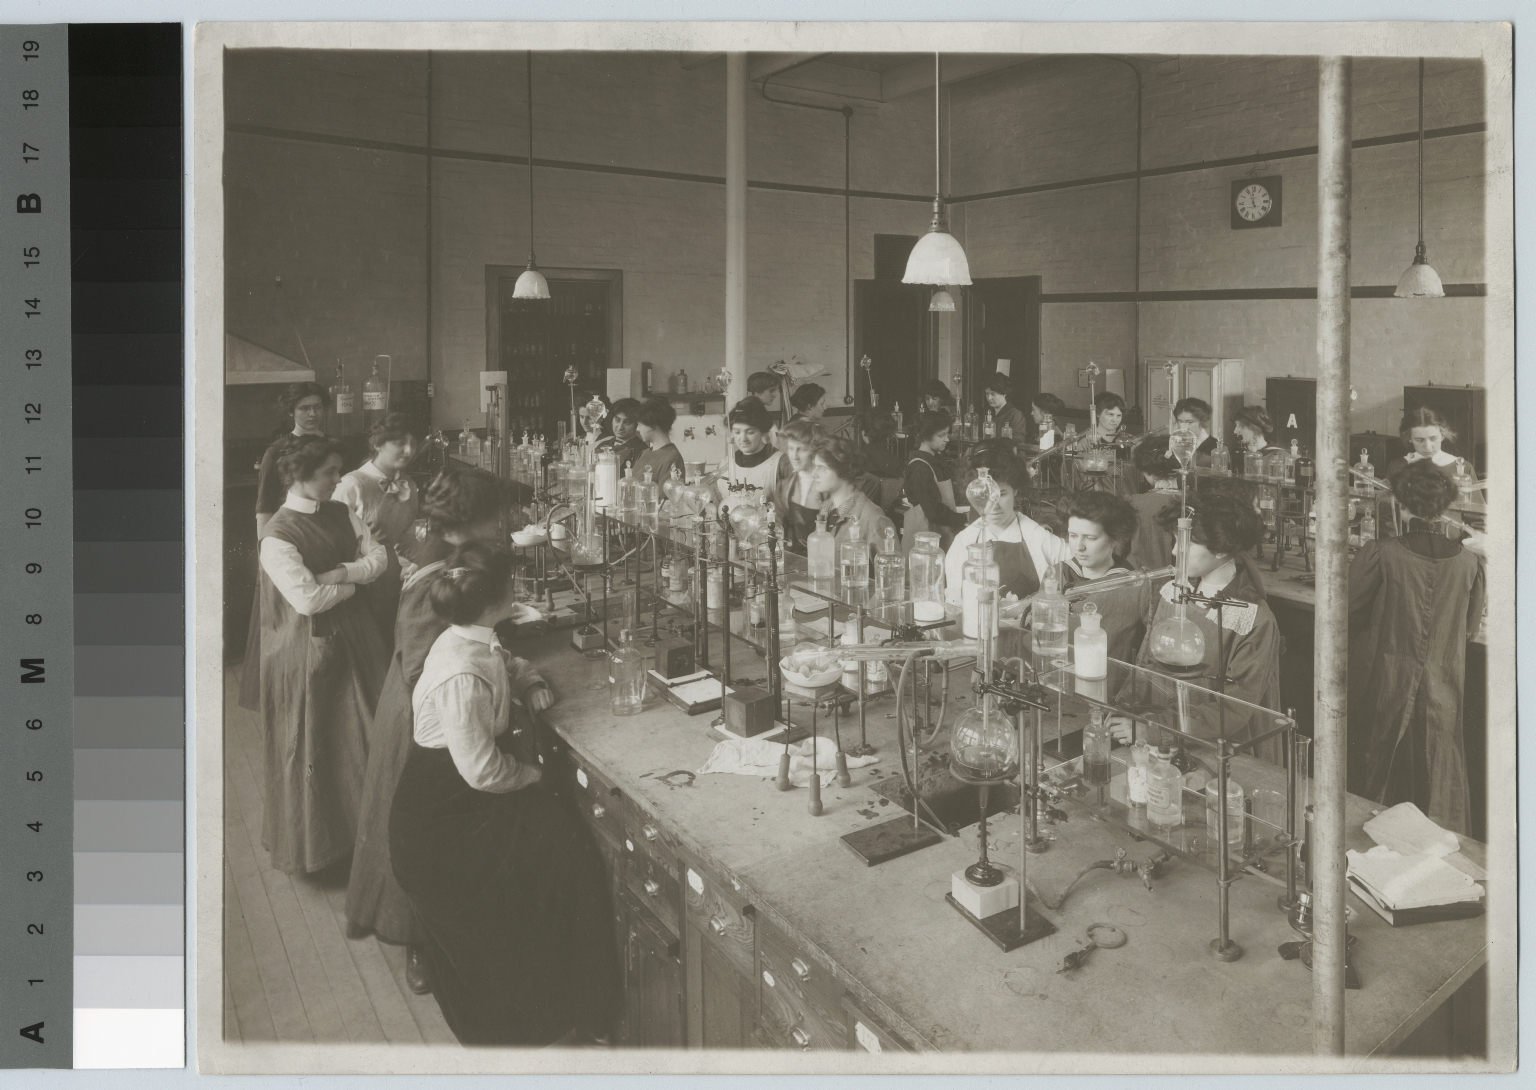 Women in chemistry laboratory, Department of Domestic Science and Art, Rochester Athenaeum and Mechanics Institute [1917]